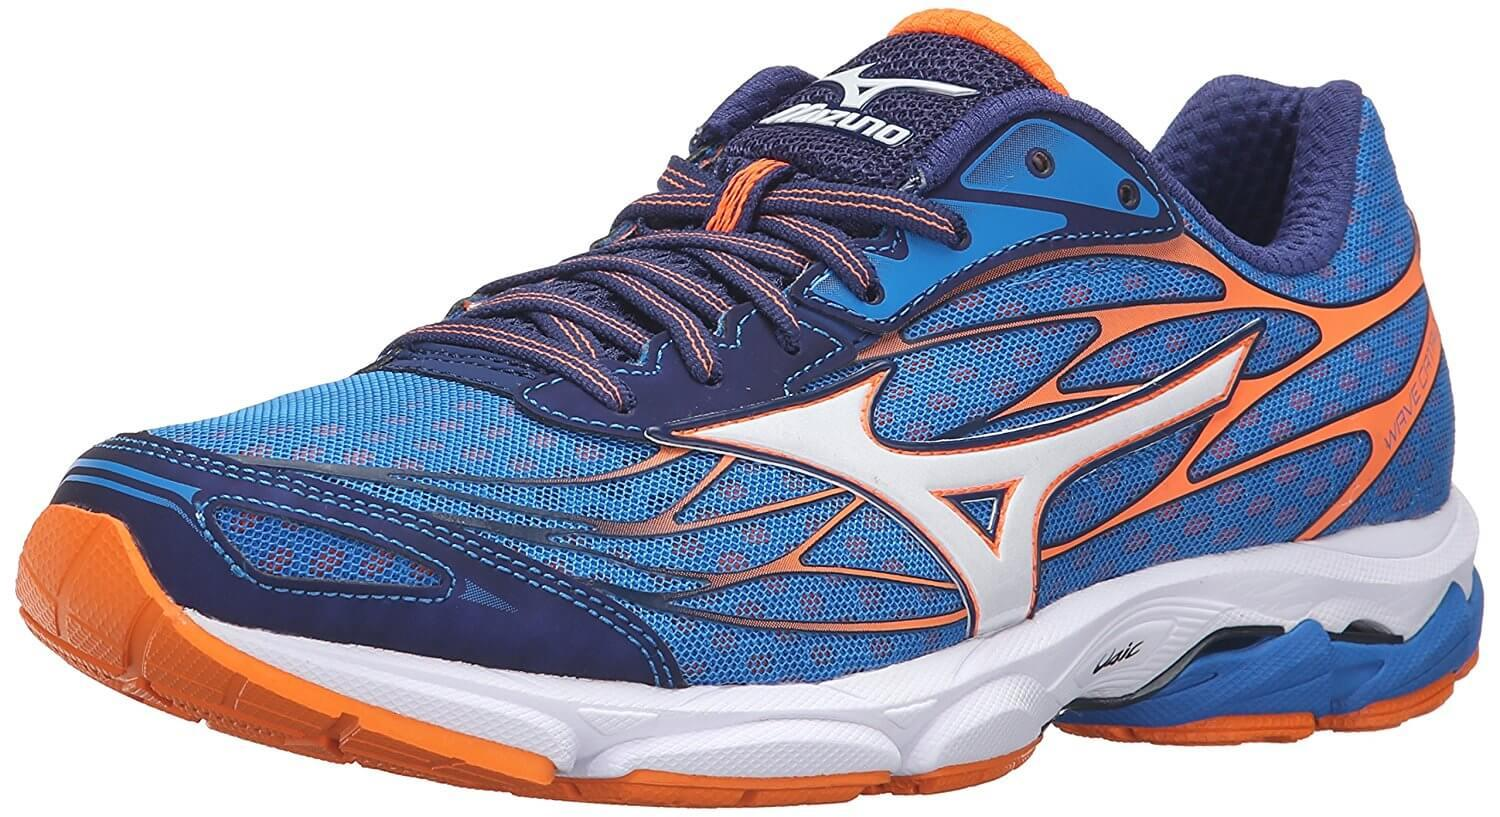 Mizuno Stability Running Shoes Reviews